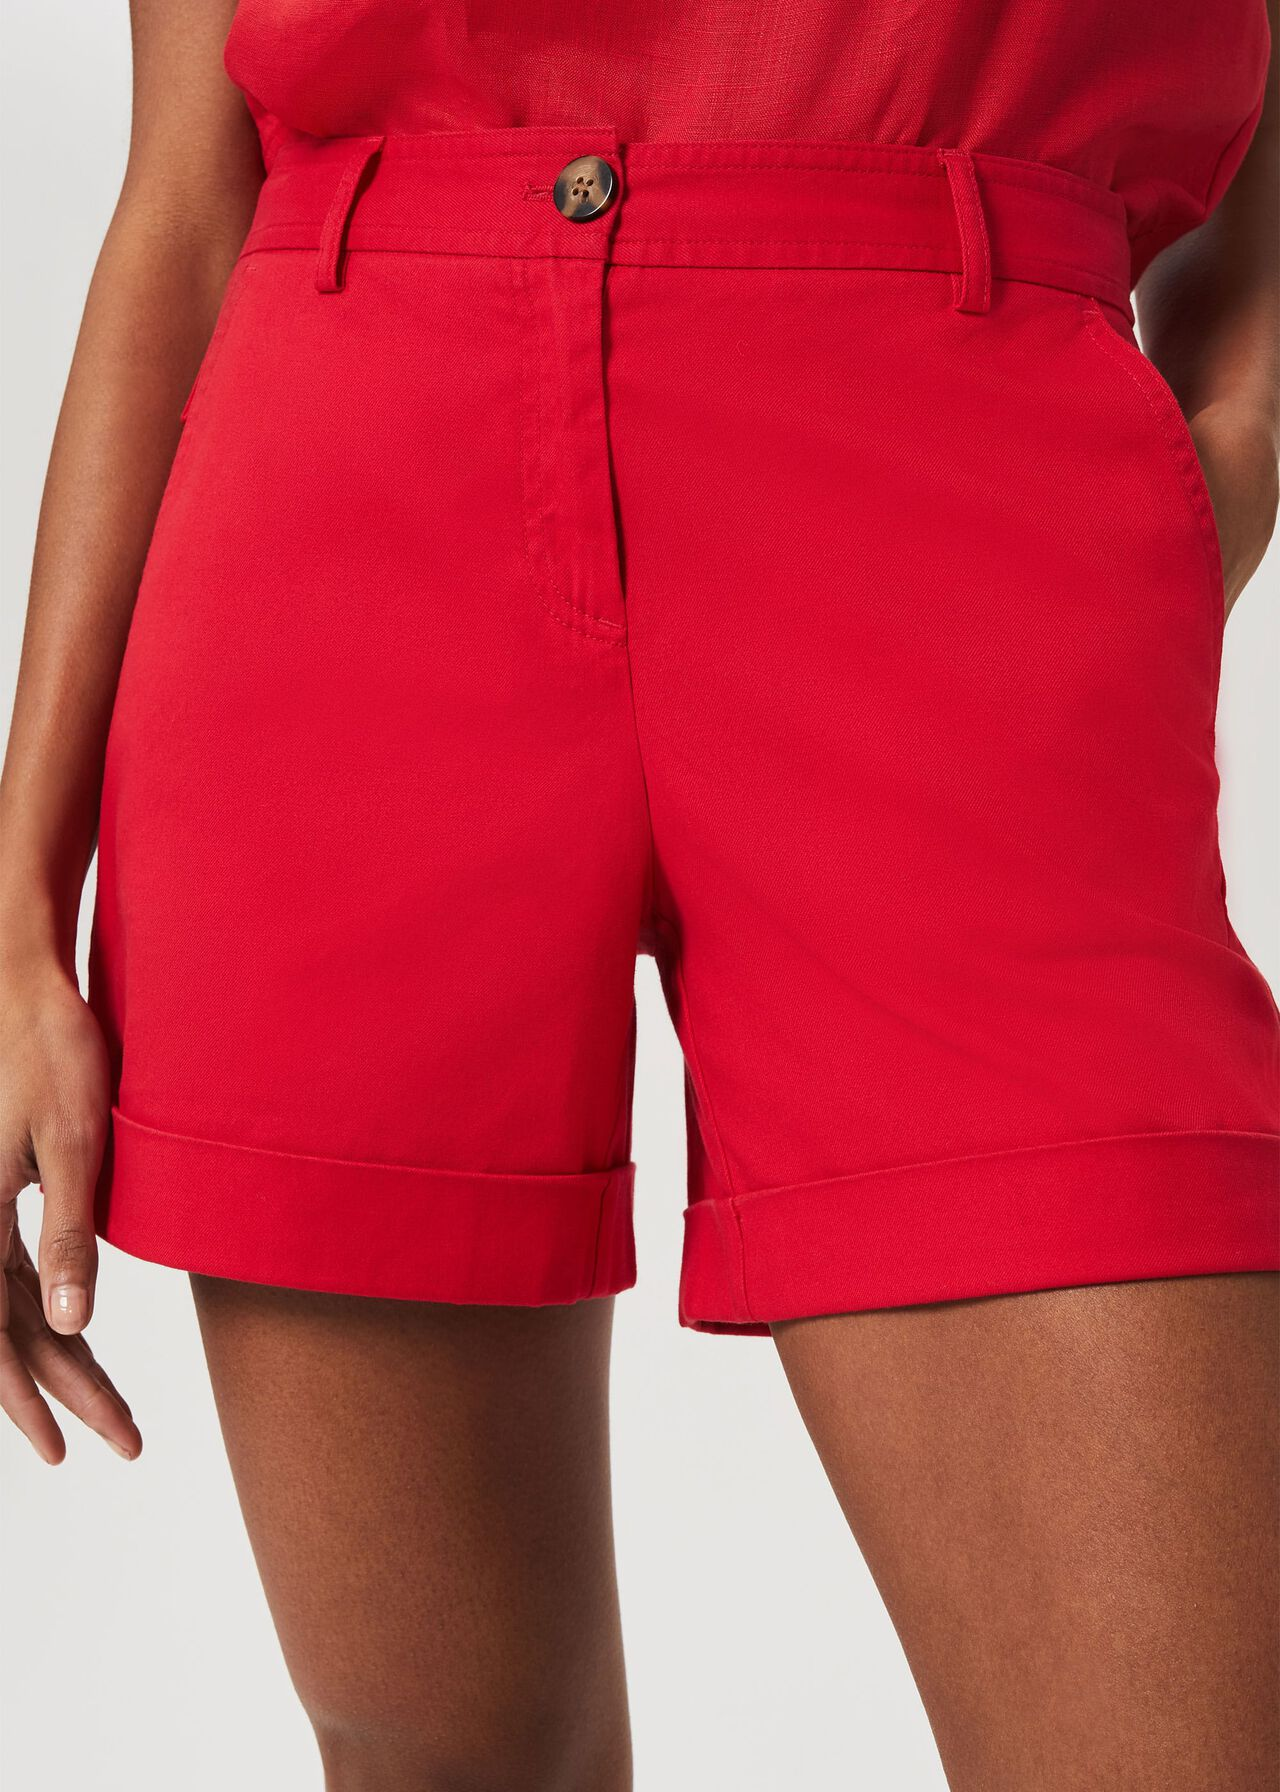 Chessie Shorts, Coral Red, hi-res